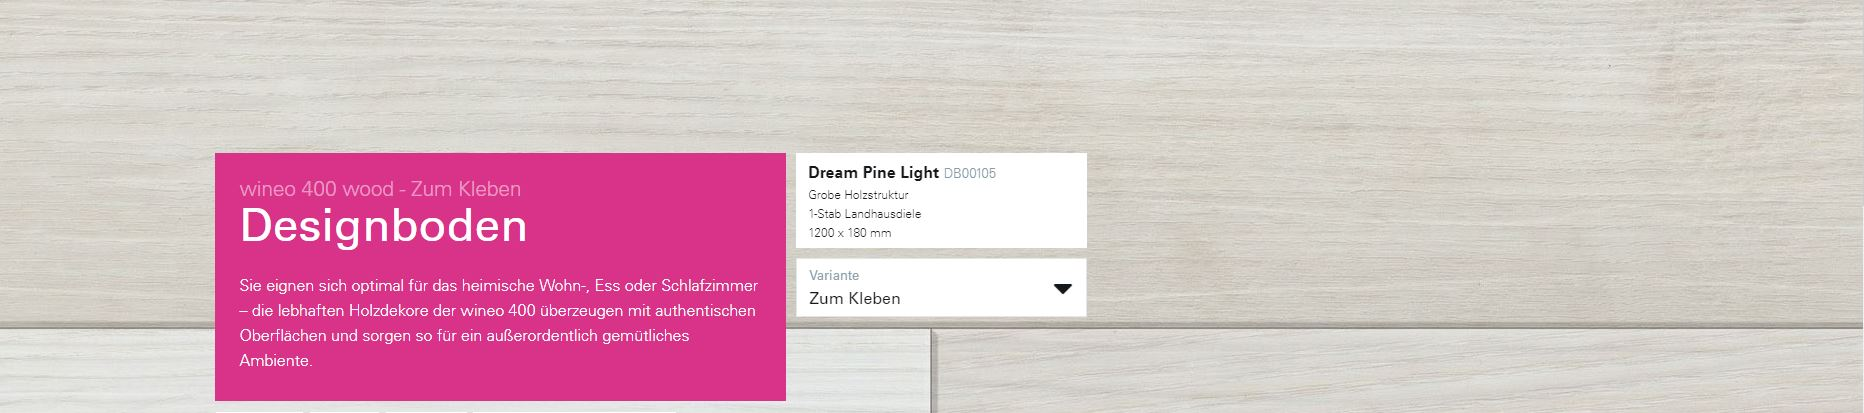 Wineo 400 Dream Pine Light DB00105 @ Boden4You.com Design Bodenbelag günstig und Trsuted Shop sicher kaufen